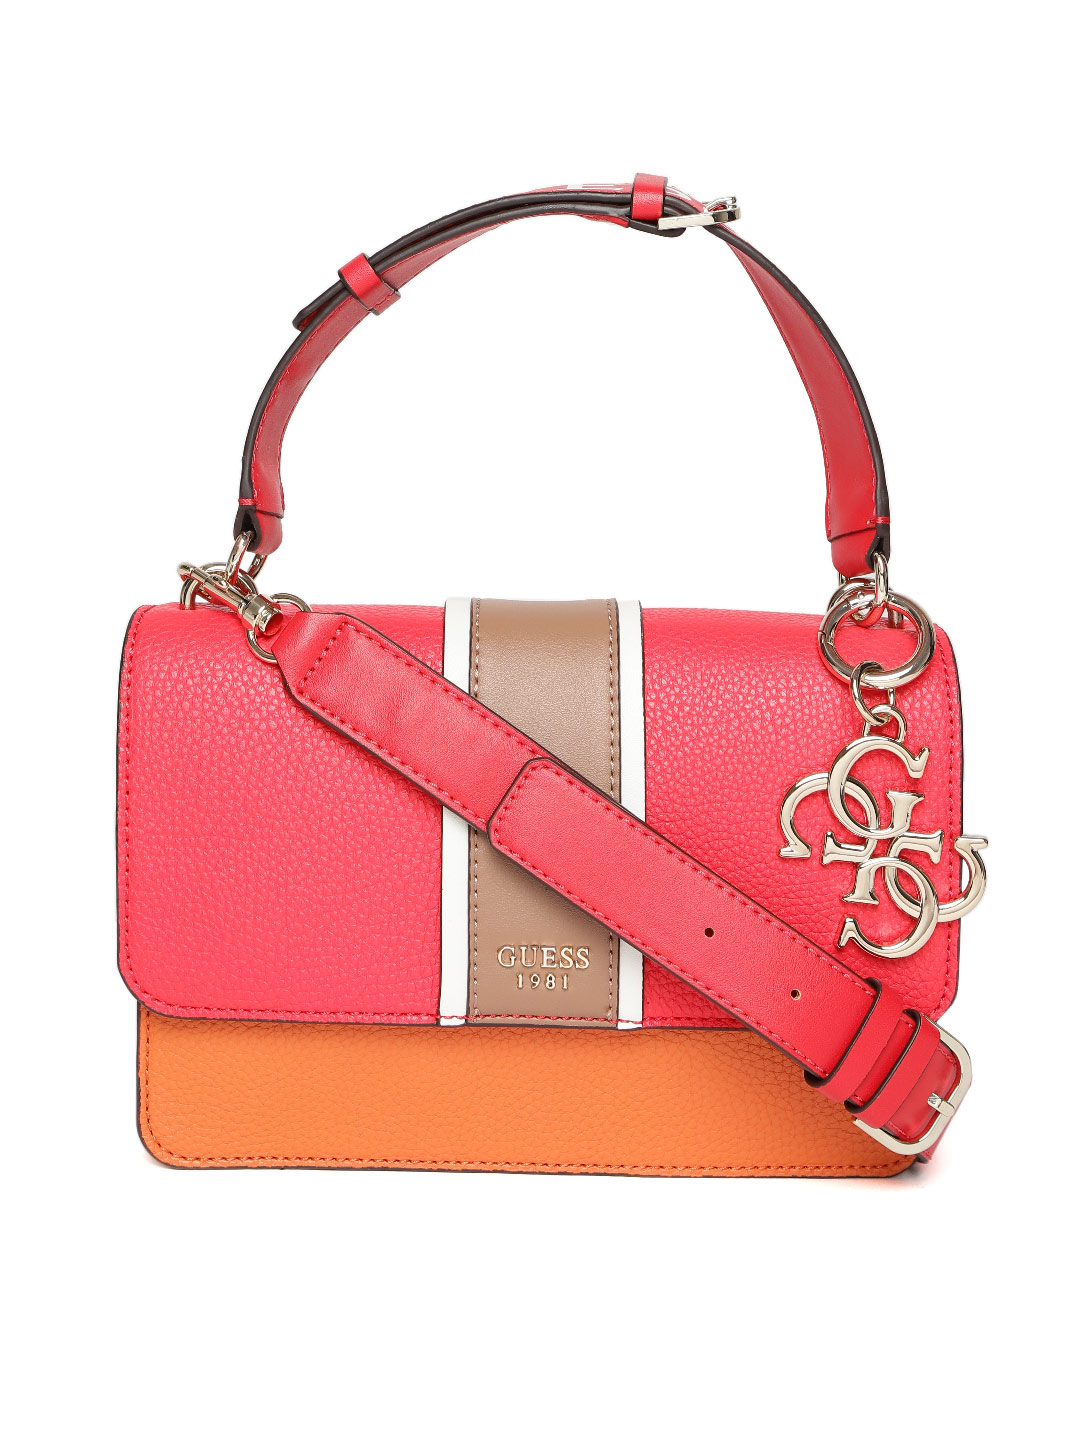 71d554cf61 Bags for Women - Buy Trendy Women s Bags Online